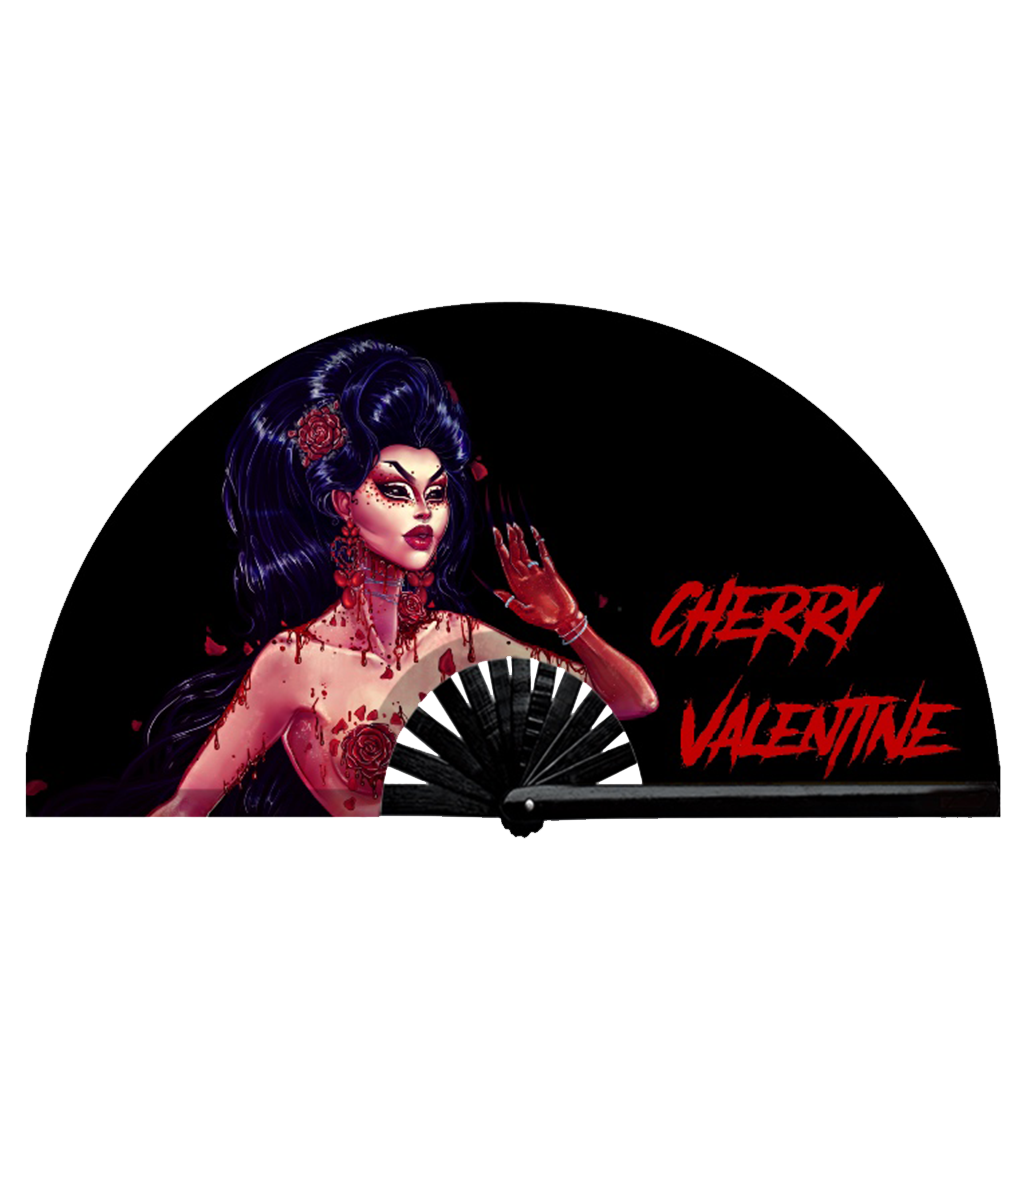 Cherry Valentine - Bloody Valentine Fan